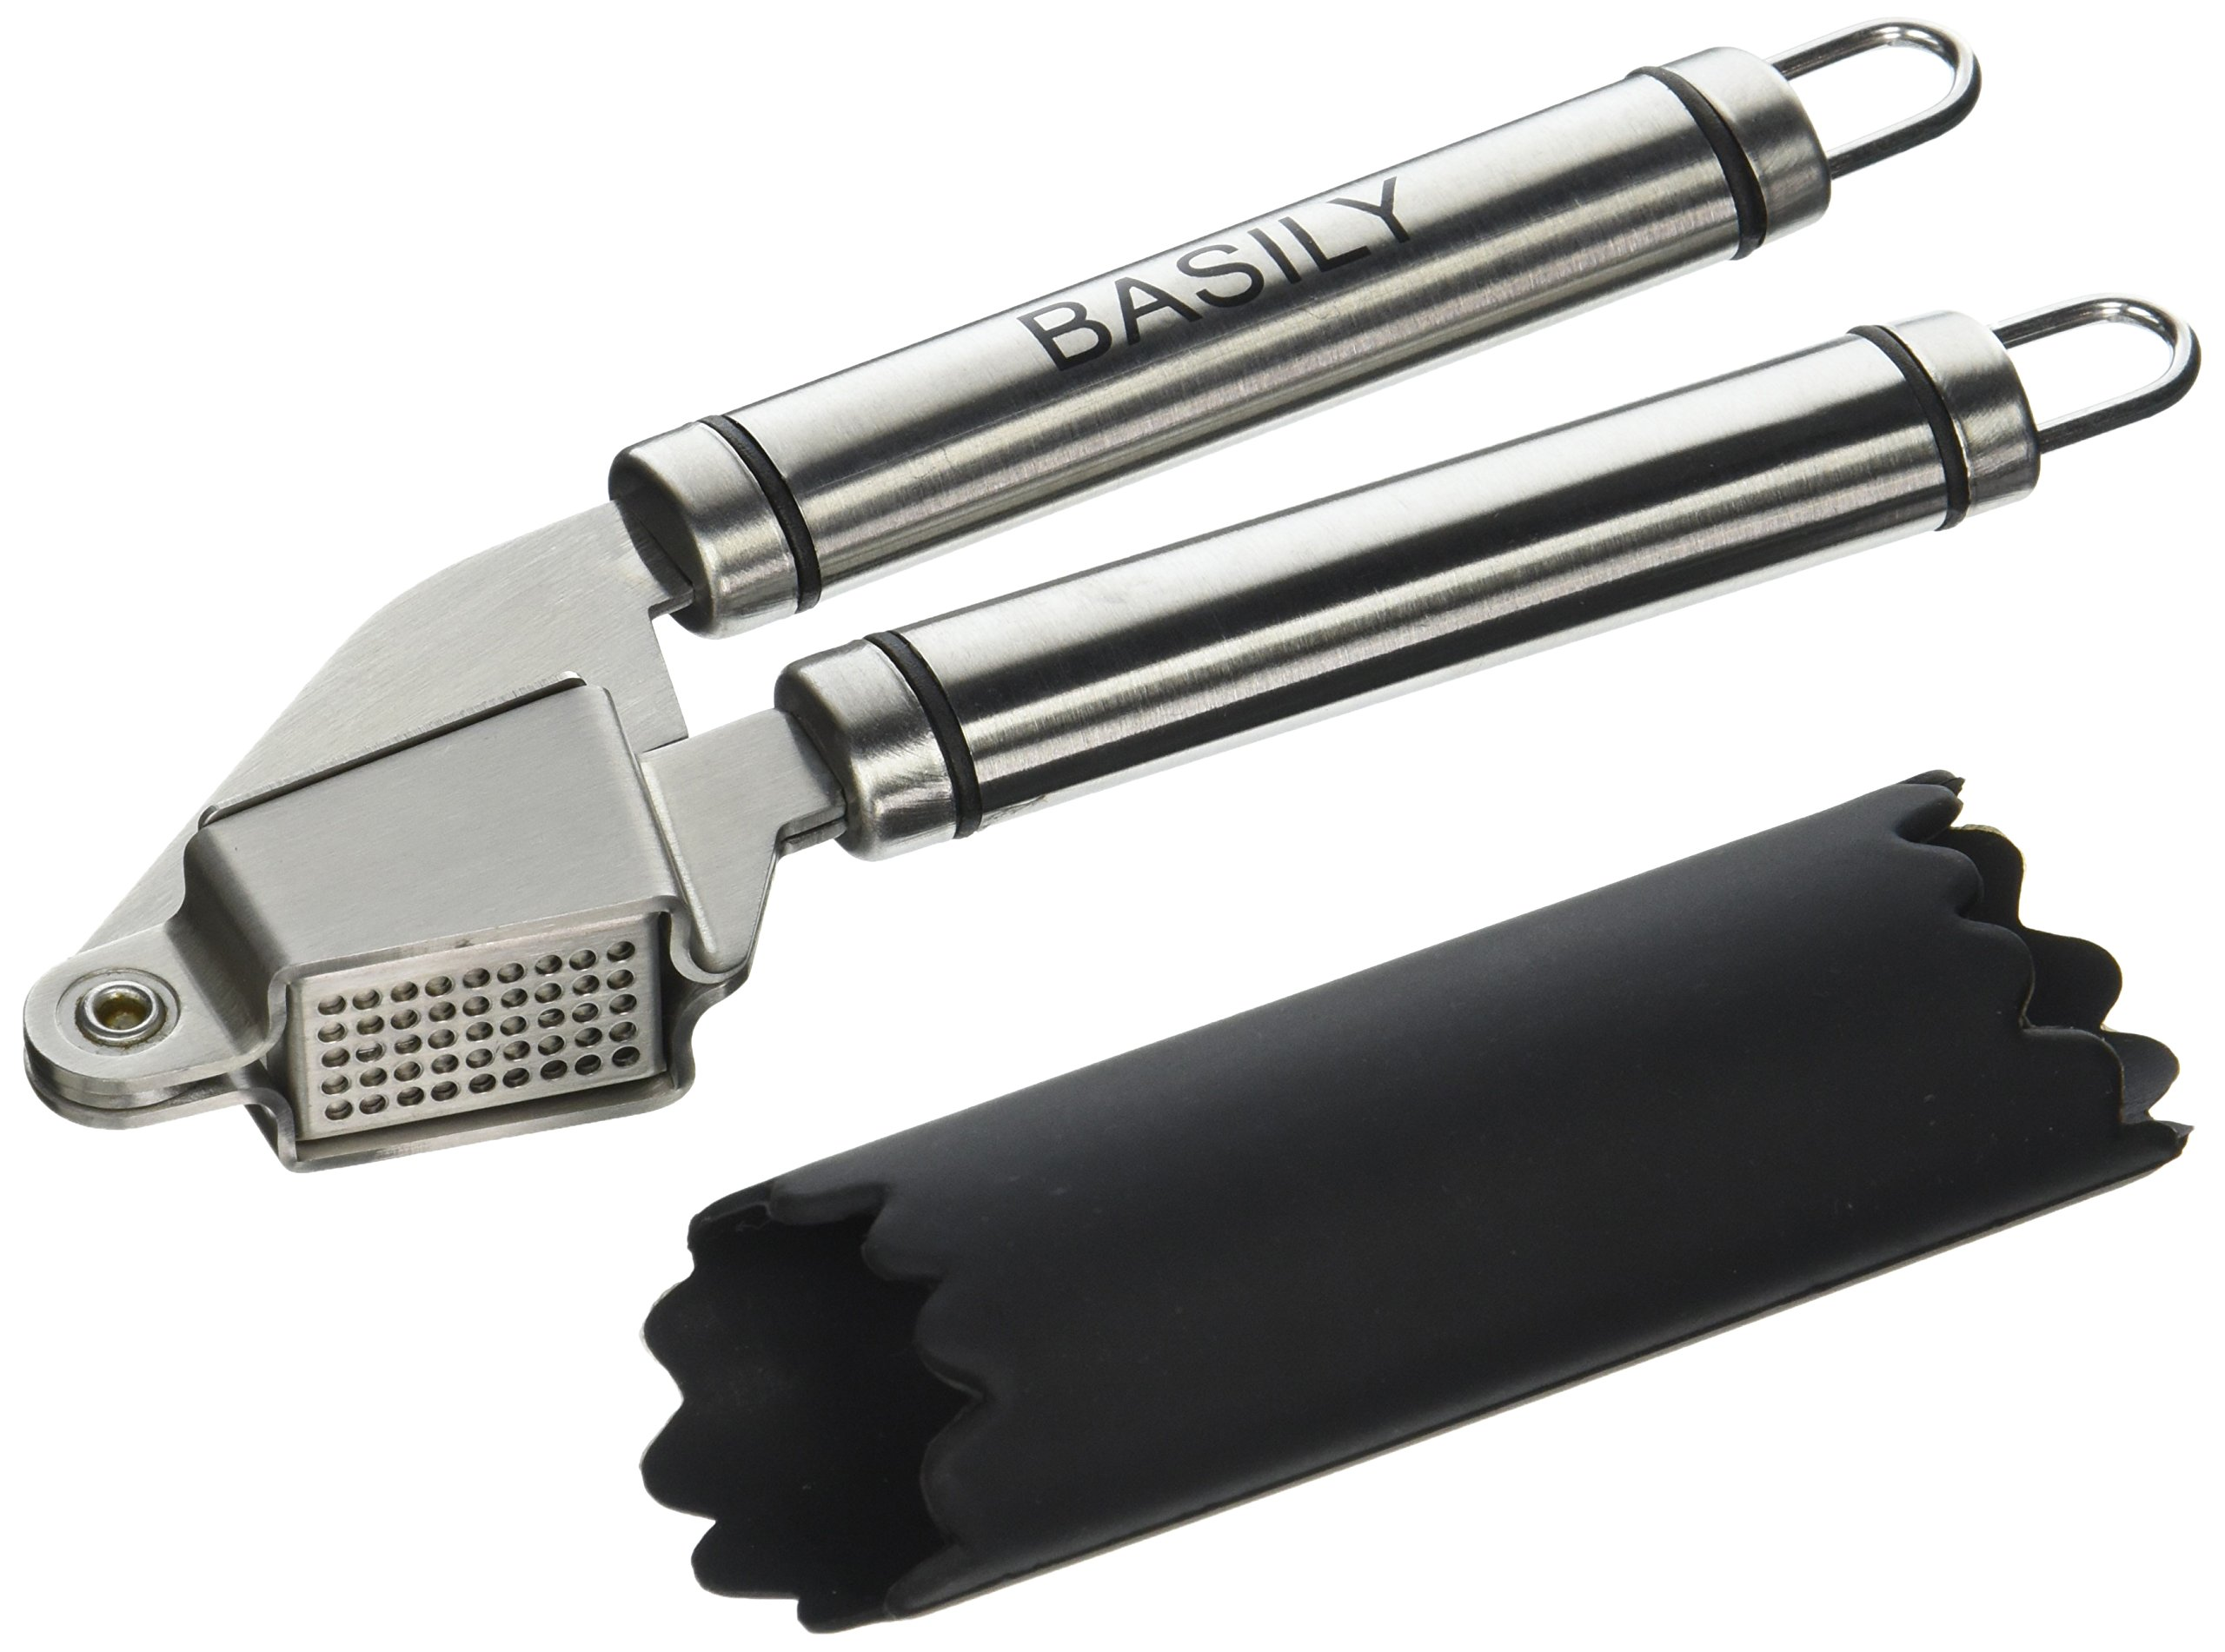 Basily Garlic Press - Garlic Peeler Premium Stainless Steel Grade - Silicon Rolling Tube Peeler Included, Stainless Steel by Basily